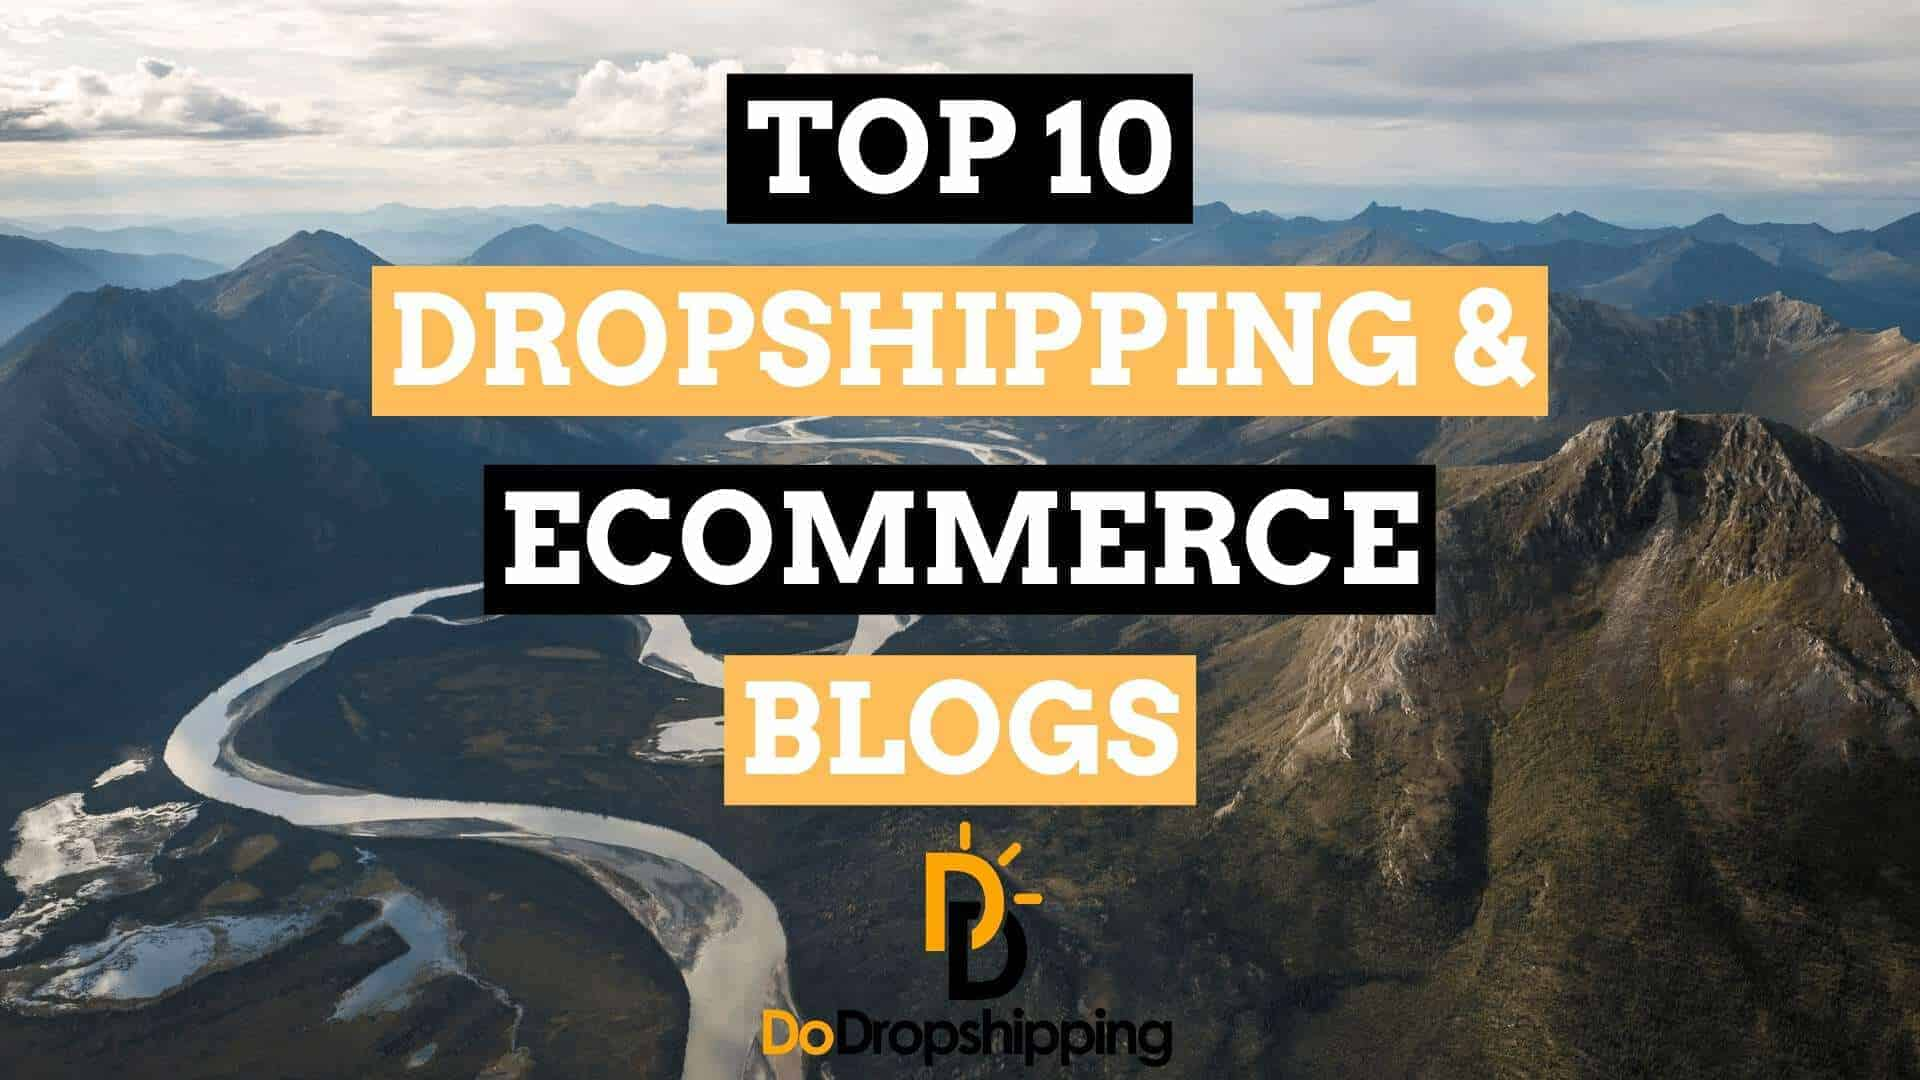 Top 10 Dropshipping & Ecommerce Blogs | Learn for Free!